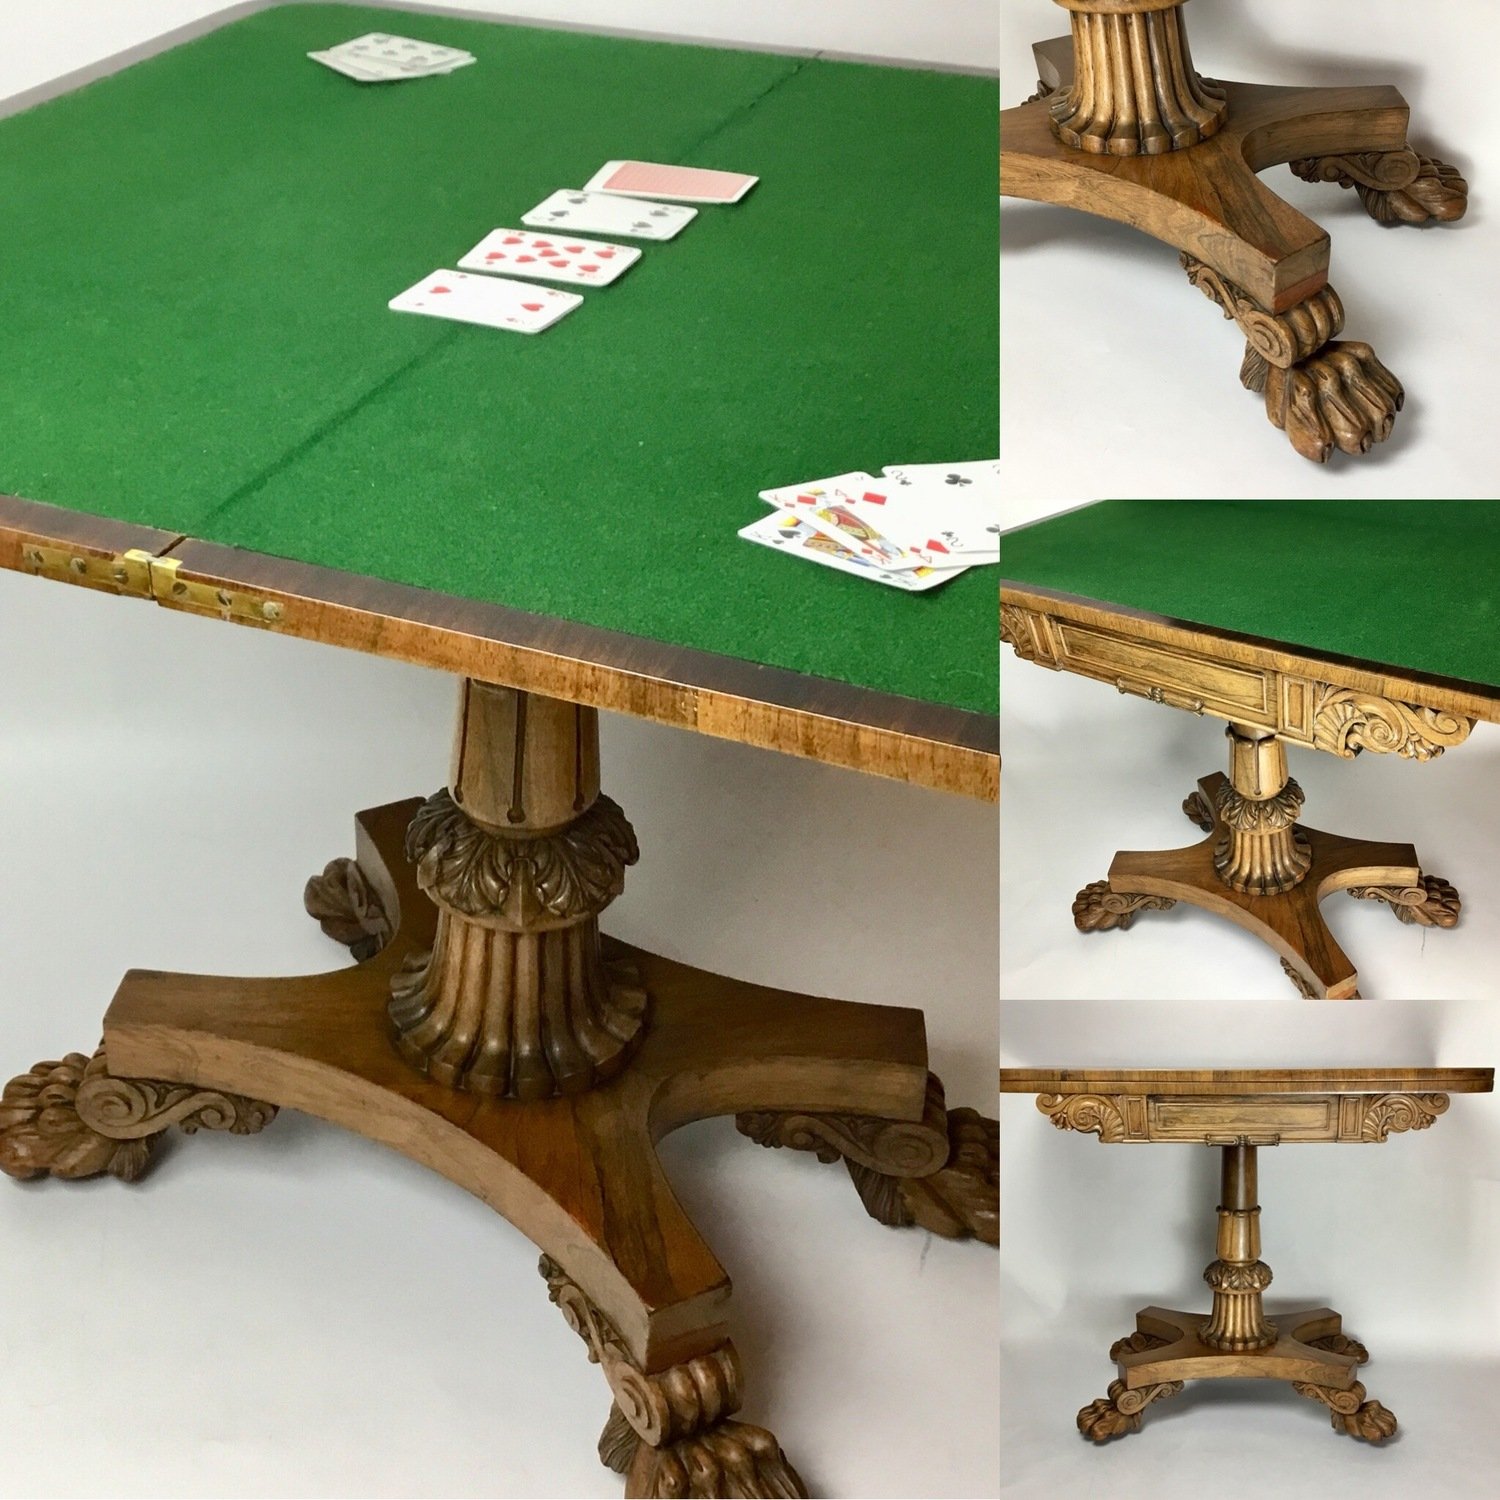 regency lions paw foldover card table circa 1815 the vintage